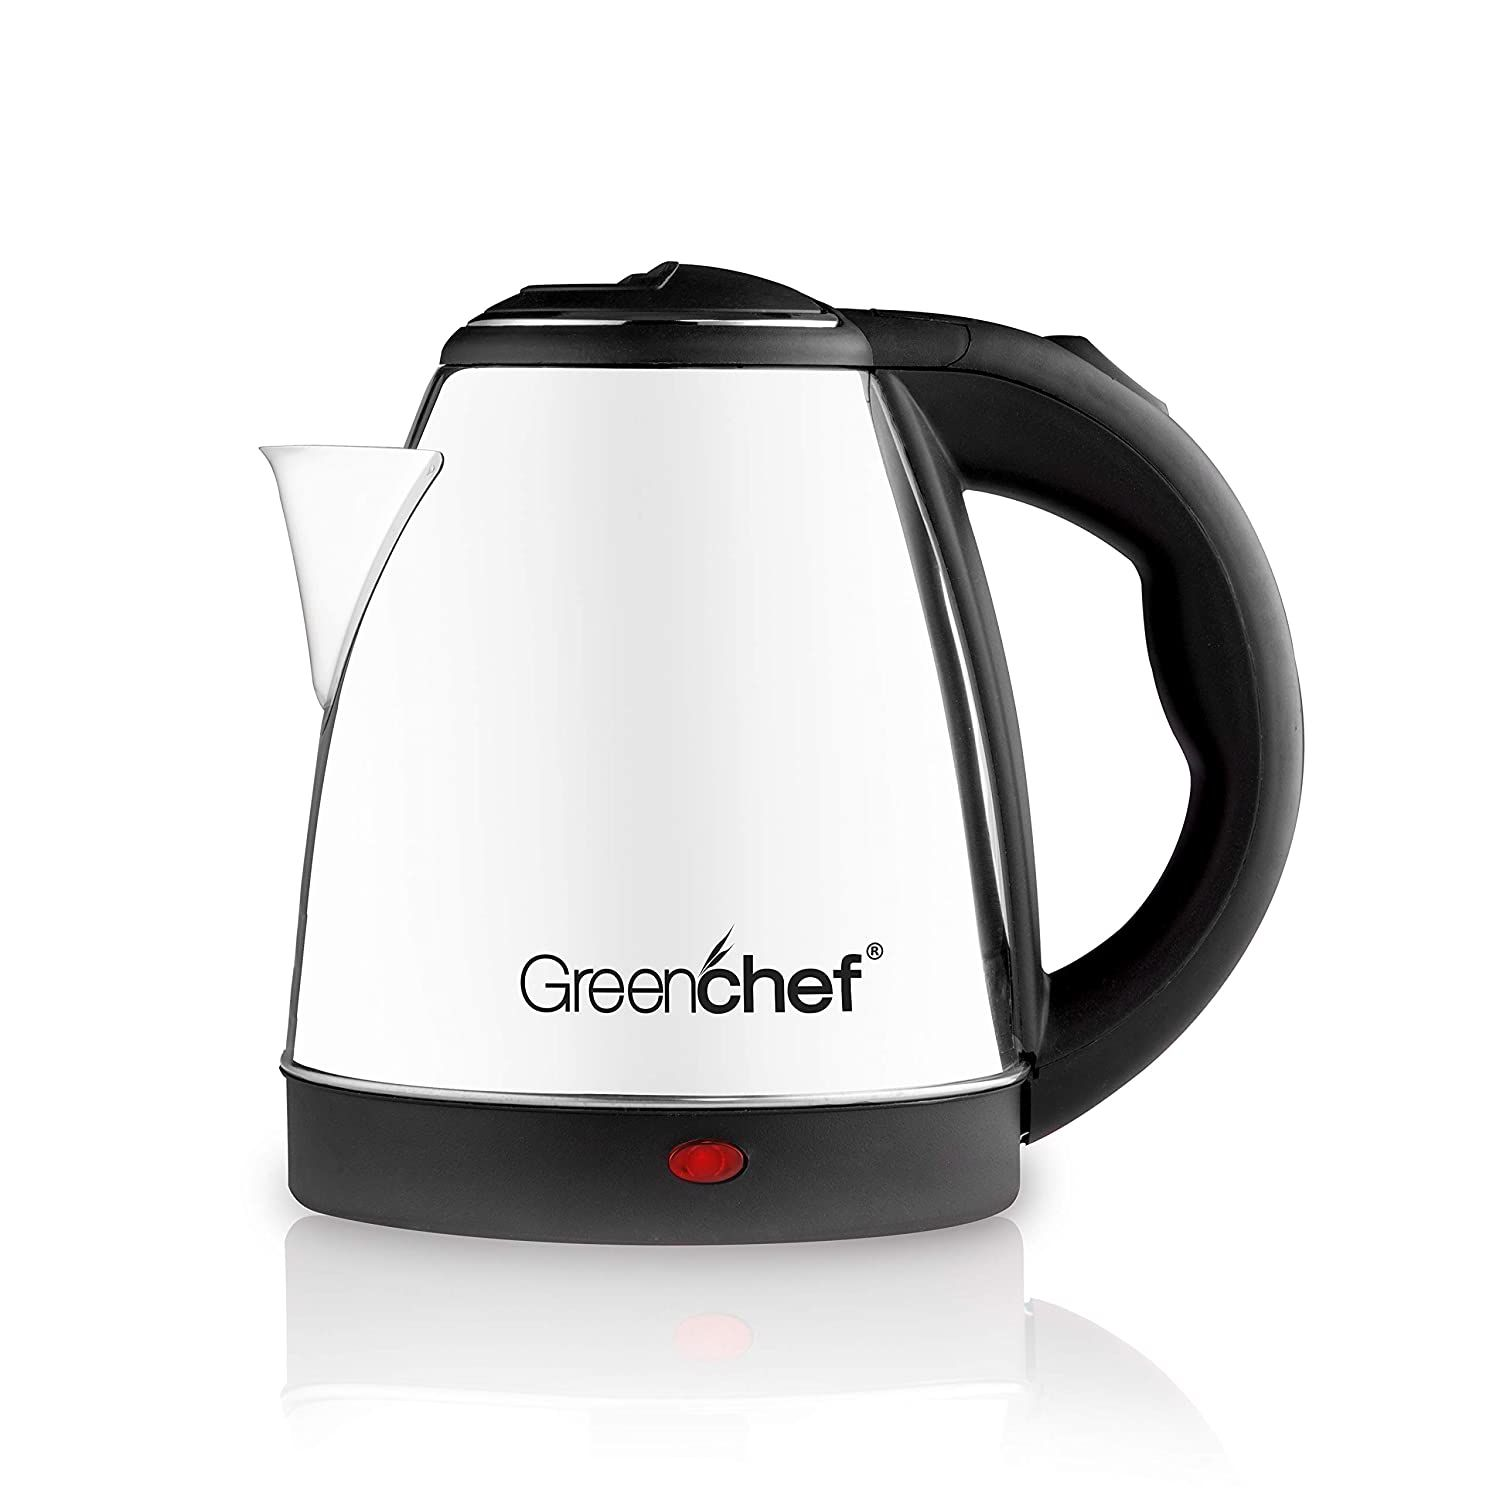 Greenchef Electric Kettle (1.5 L, Silver)